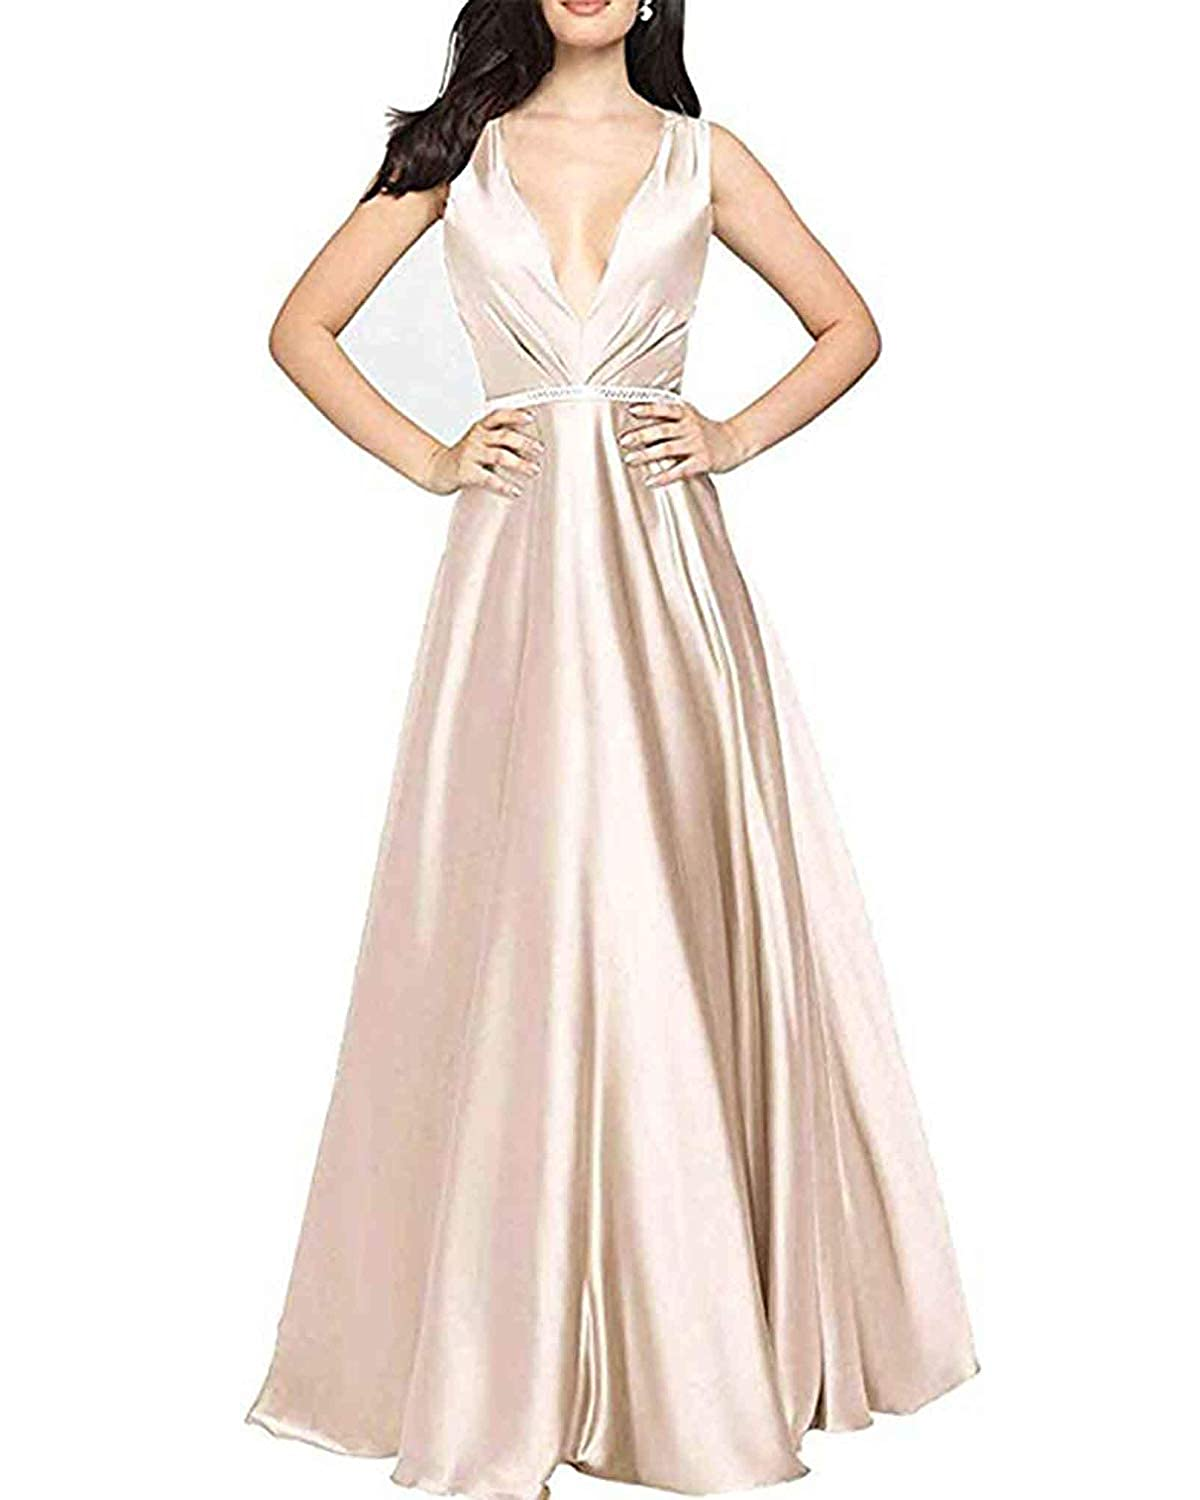 Champagne WHLWHL ALine VNeck Long Party Prom Gown for Women Formal Evening Dress with Pockets